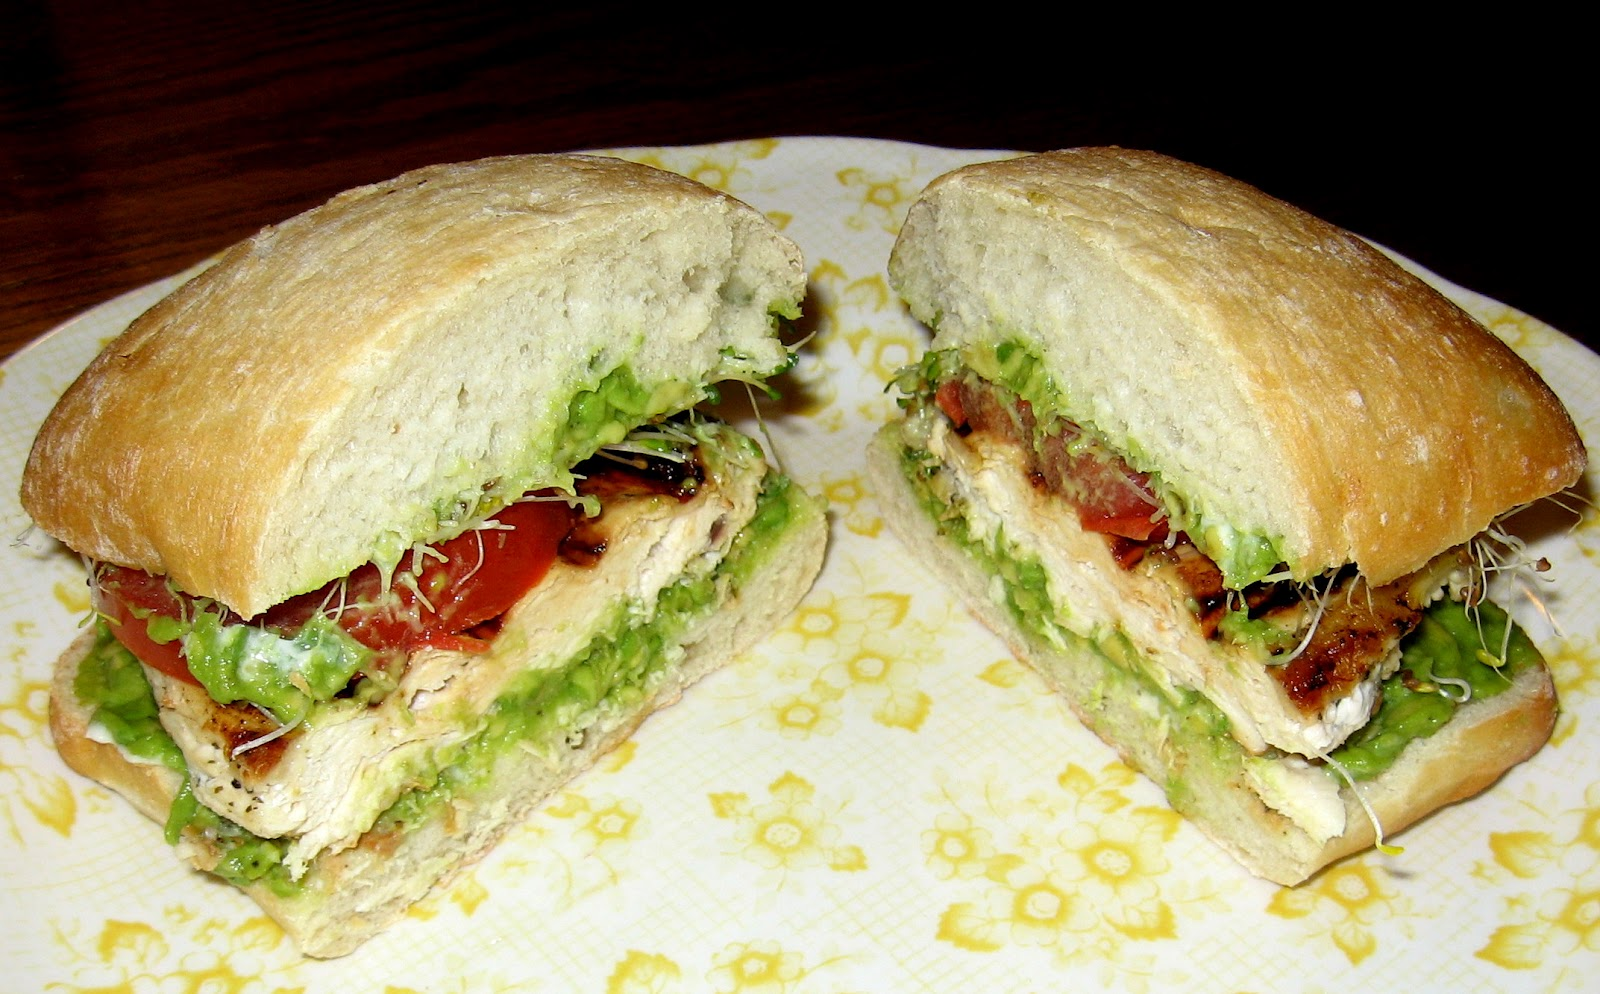 Grilled Chicken Sandwiches with Mozzarella, Tomato and